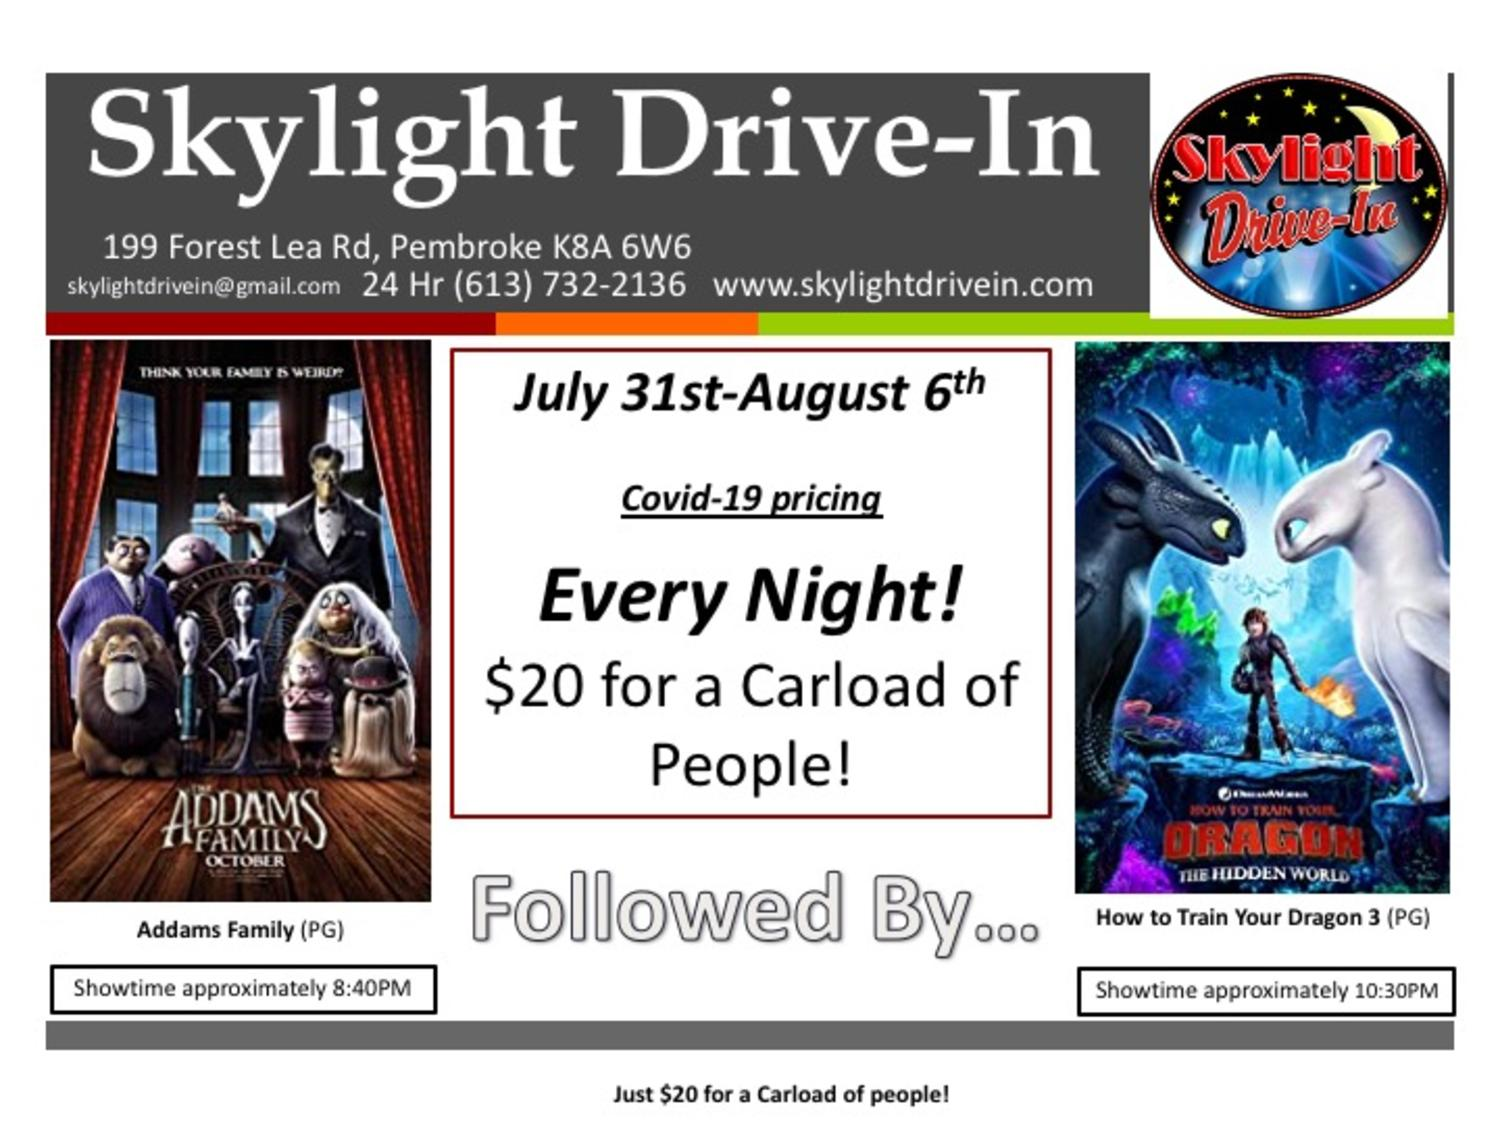 Skylight Drive-In featuring The Addams Family followed by  How To Train Your Dragon: The Hidden World